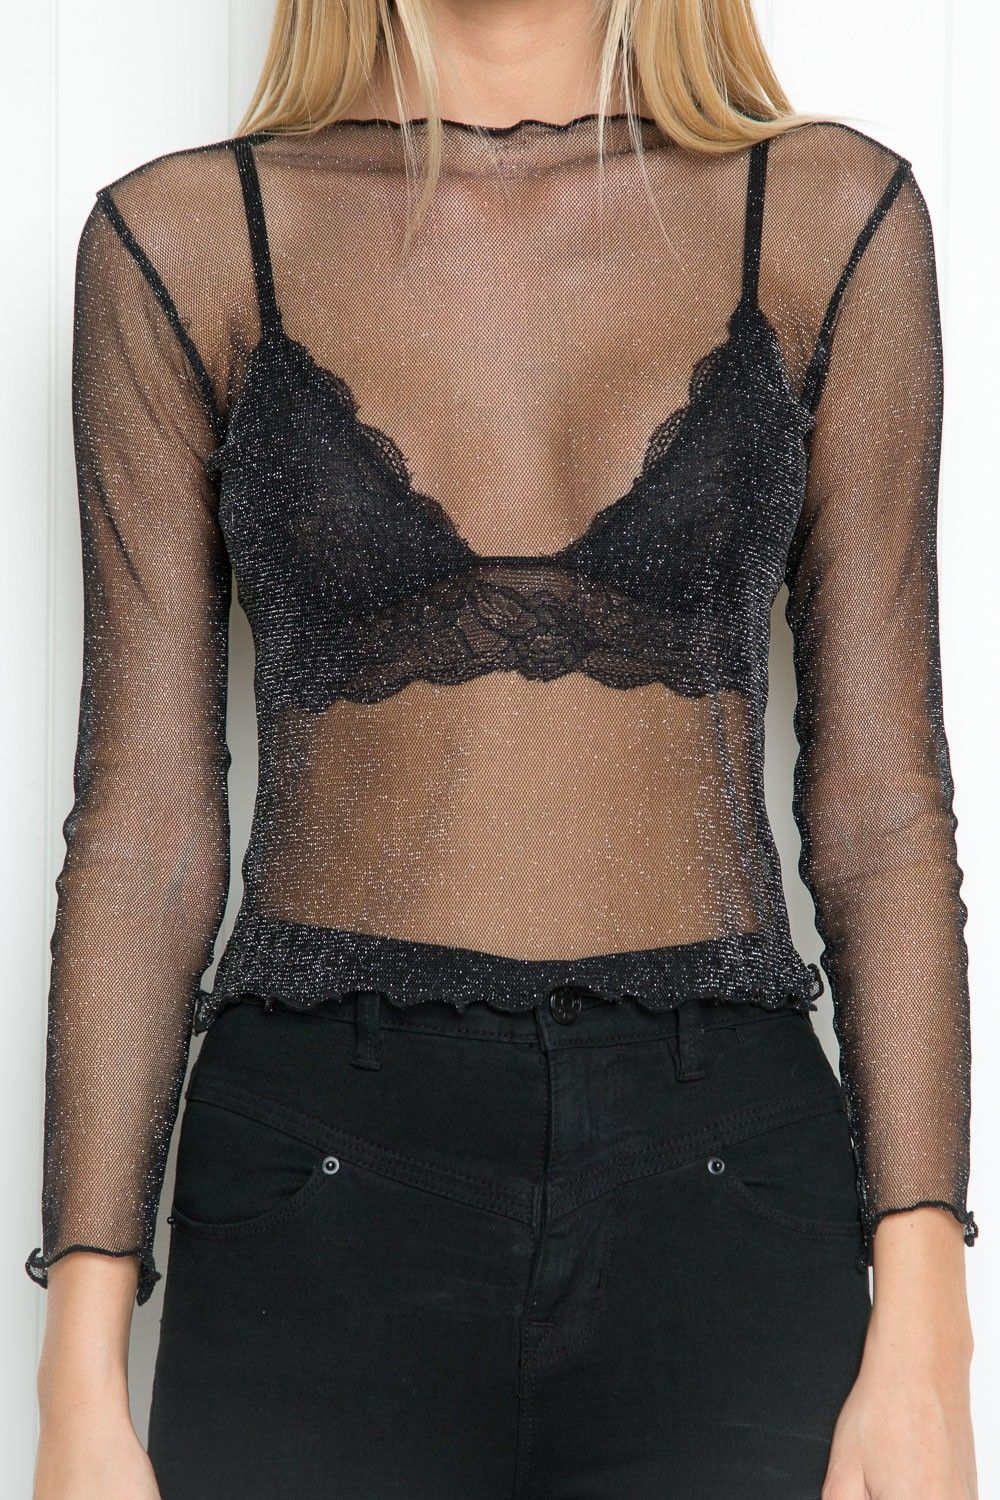 294a7680a551 Brandy ♥ Melville | Rene Glitter Top - Long Sleeves - Tops - Clothing